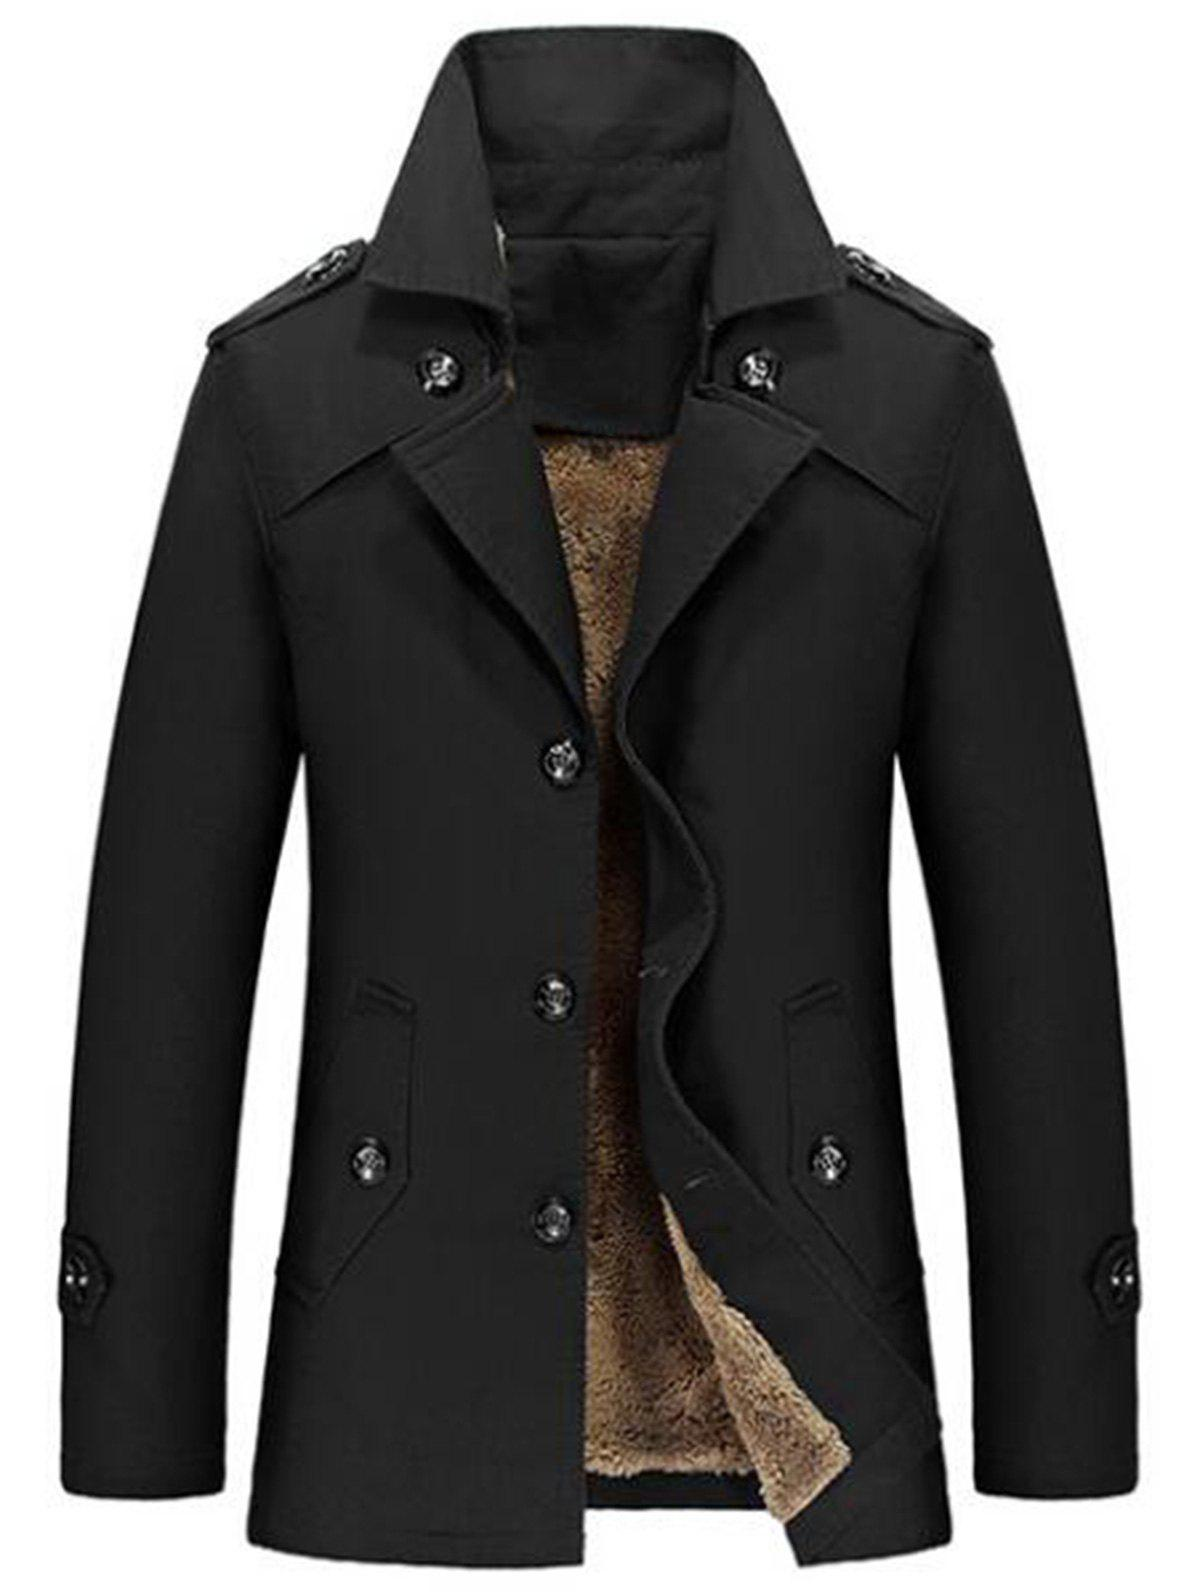 Hot Lapel Single-Breasted Slim Jacket